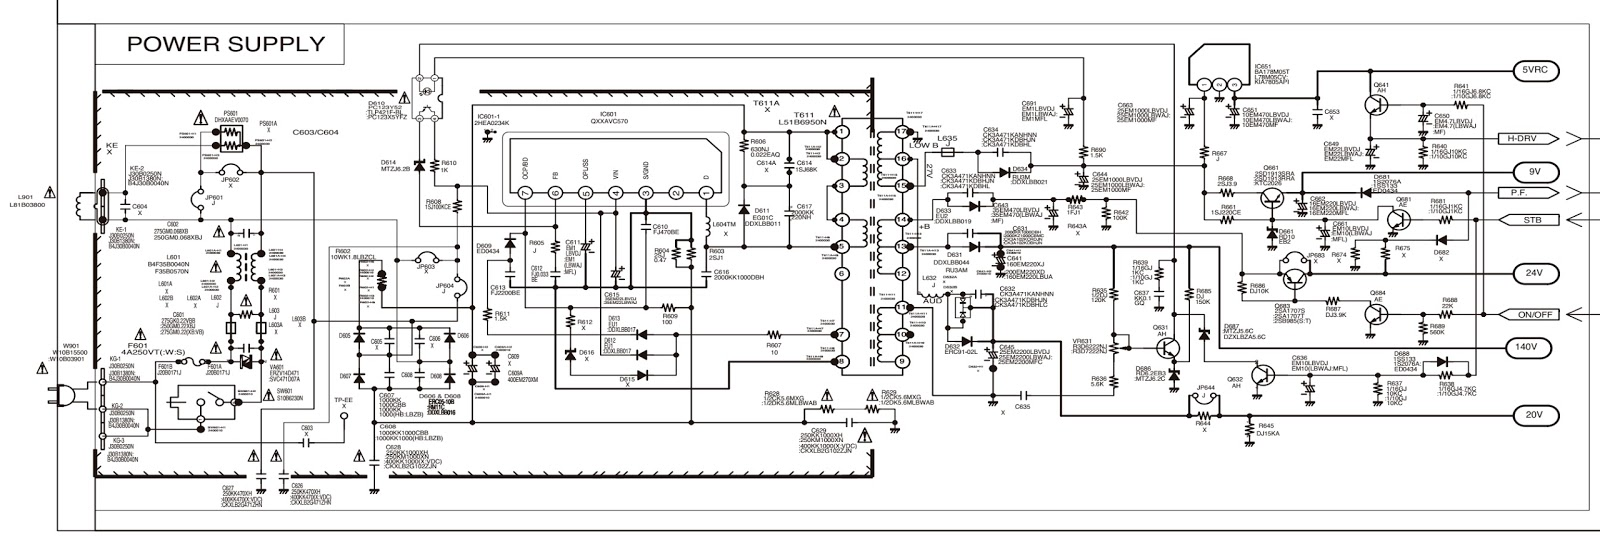 Tv Power Schematic | Wiring Library